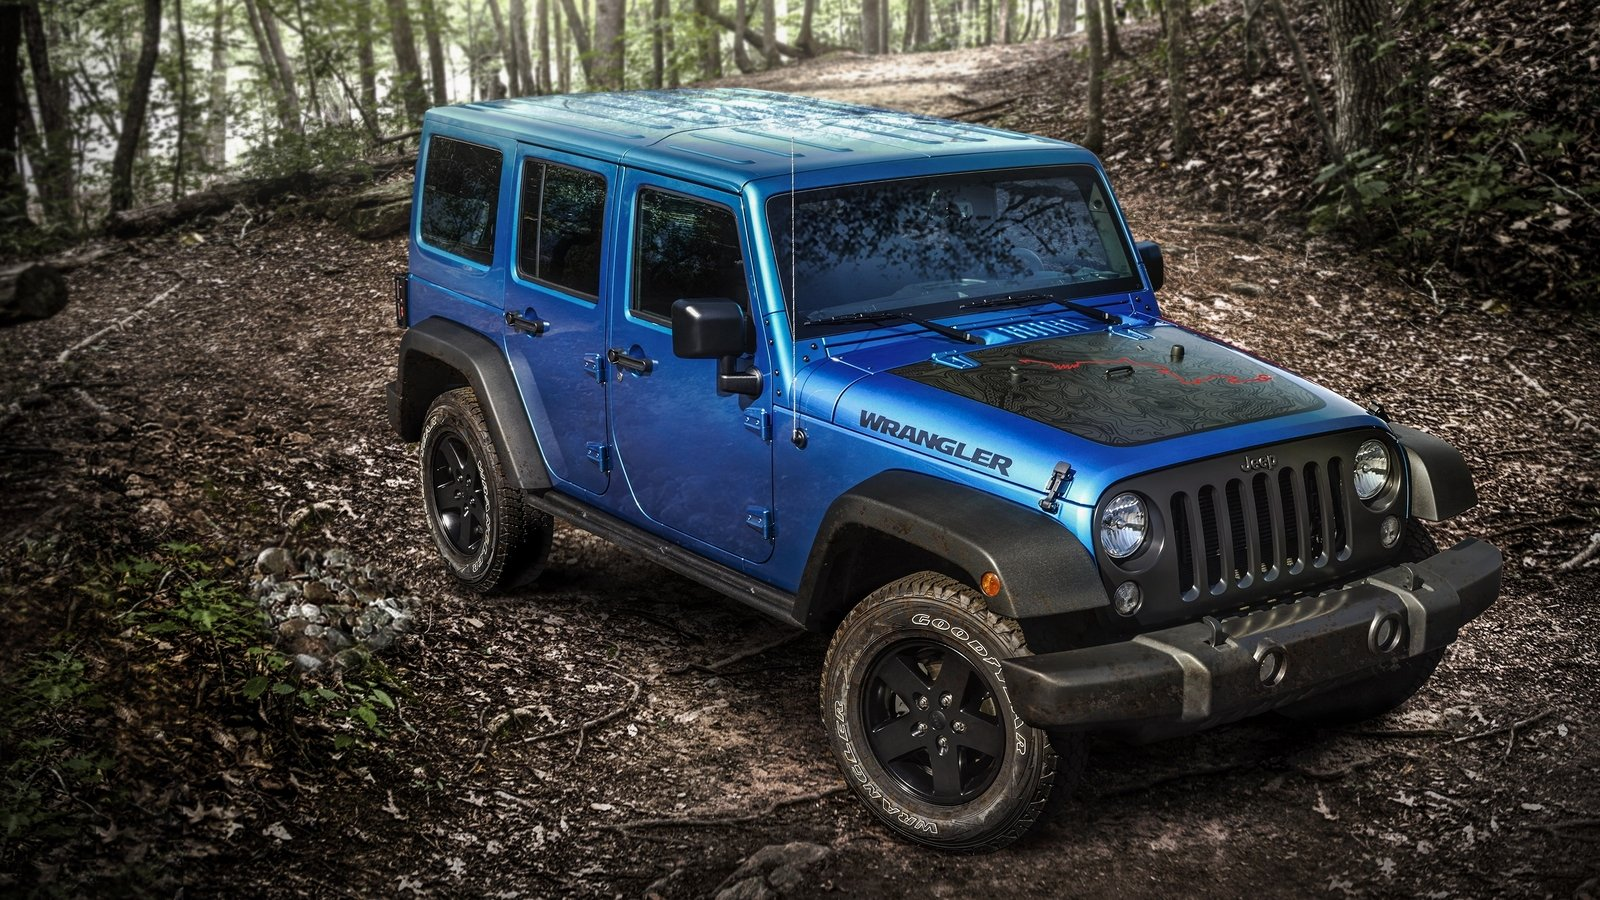 Jeep Grand Wagoneer >> 2016 Jeep Wrangler Black Bear Edition Pictures, Photos ...